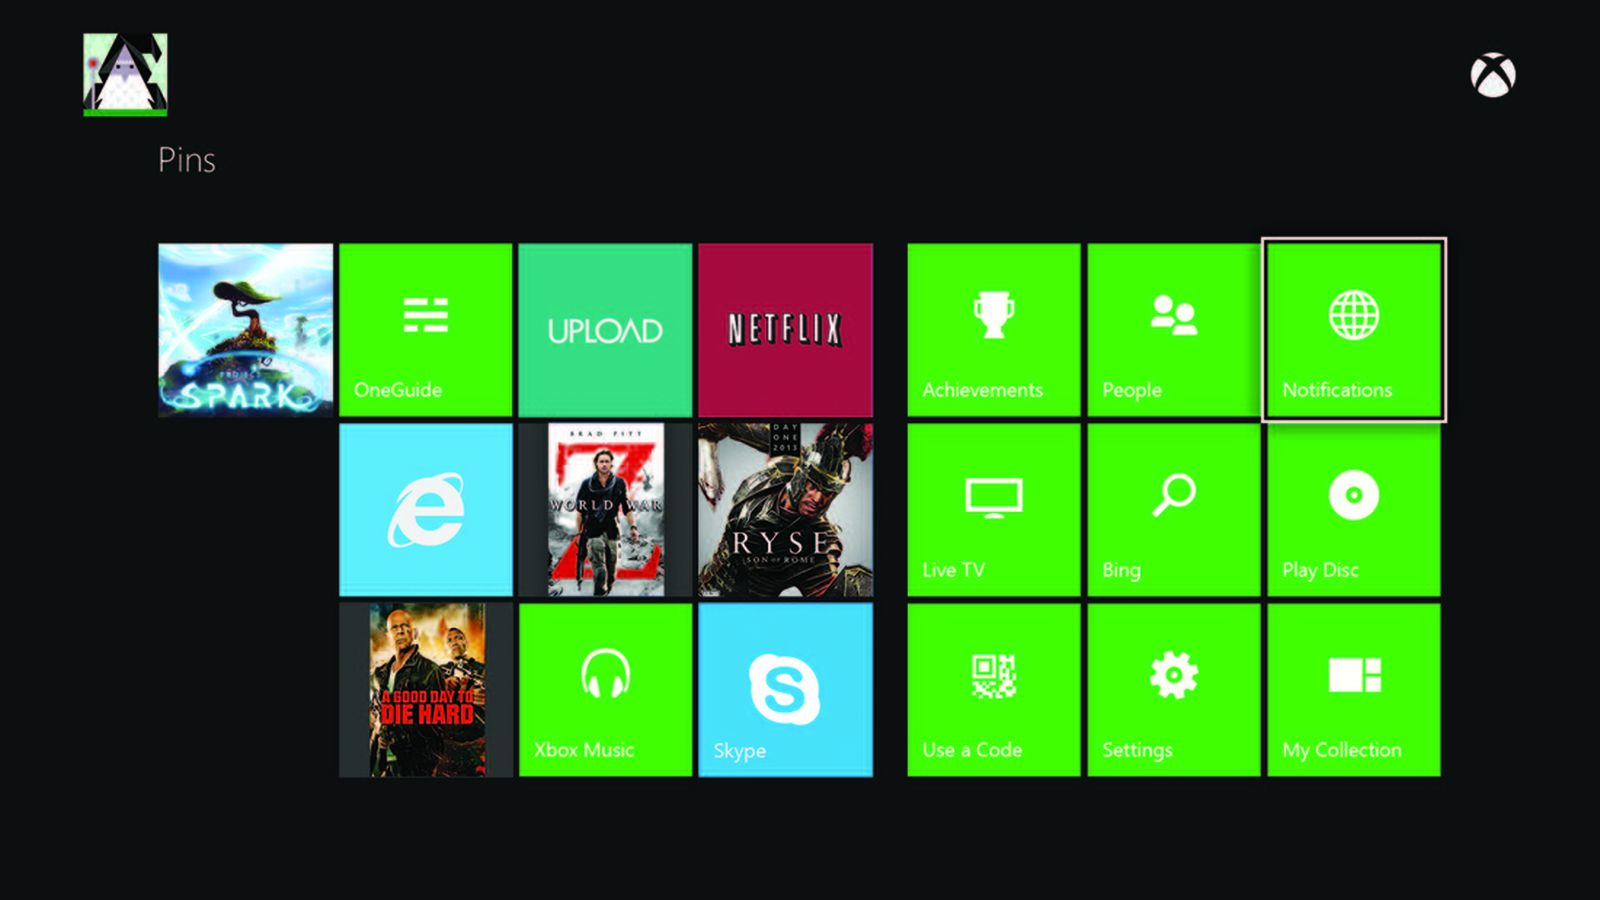 Xbox Ones Recents Home Screen Based On 360 Users